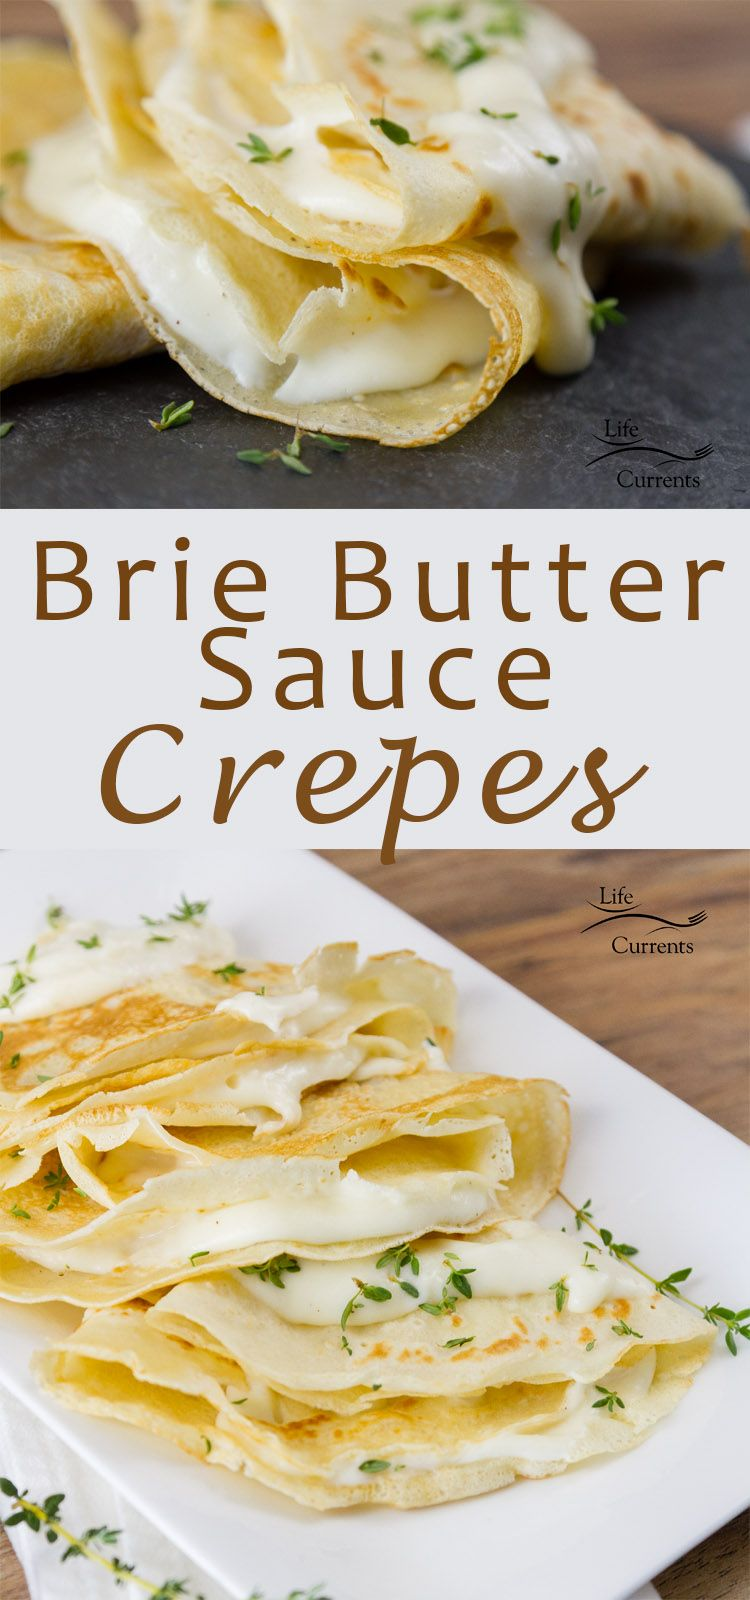 Brie butter sauce crepes the best of french cuisine made at home brie butter sauce crepes the best of french cuisine made at home ad forumfinder Choice Image